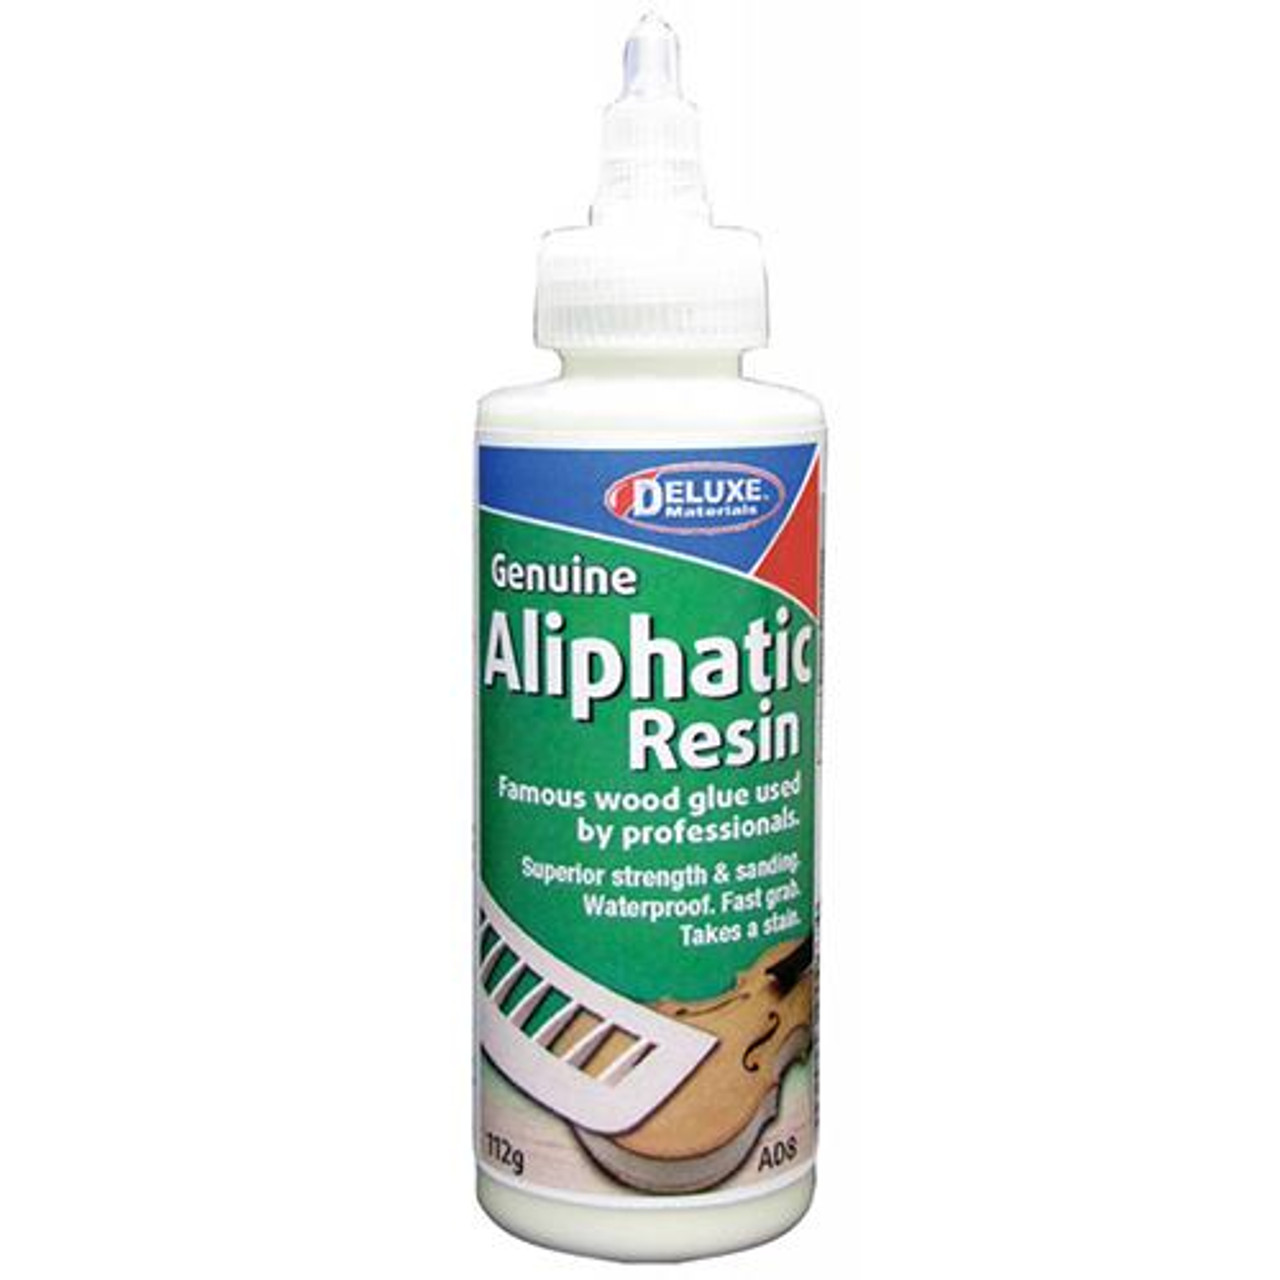 Aliphatic Resin 112g